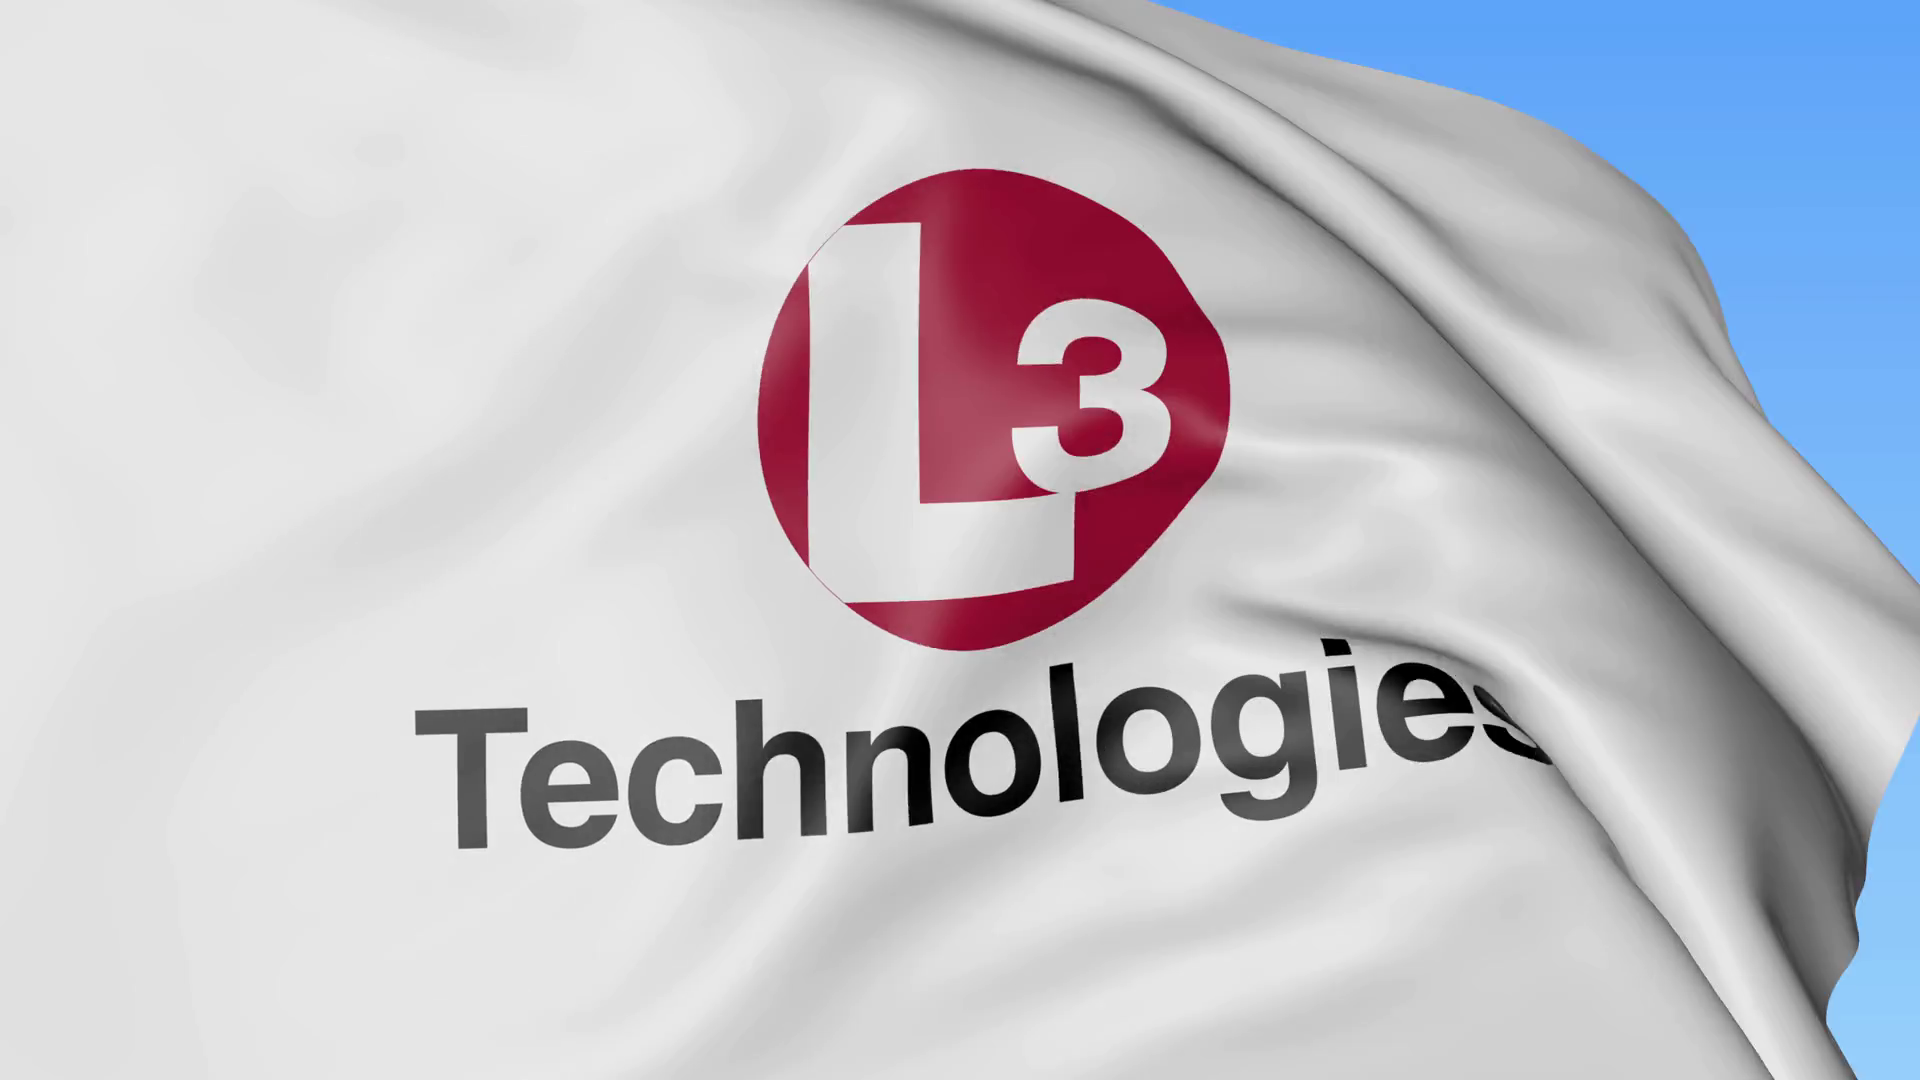 L3 Technologies Launches L3 Commercial Aviation Driven by Increasing